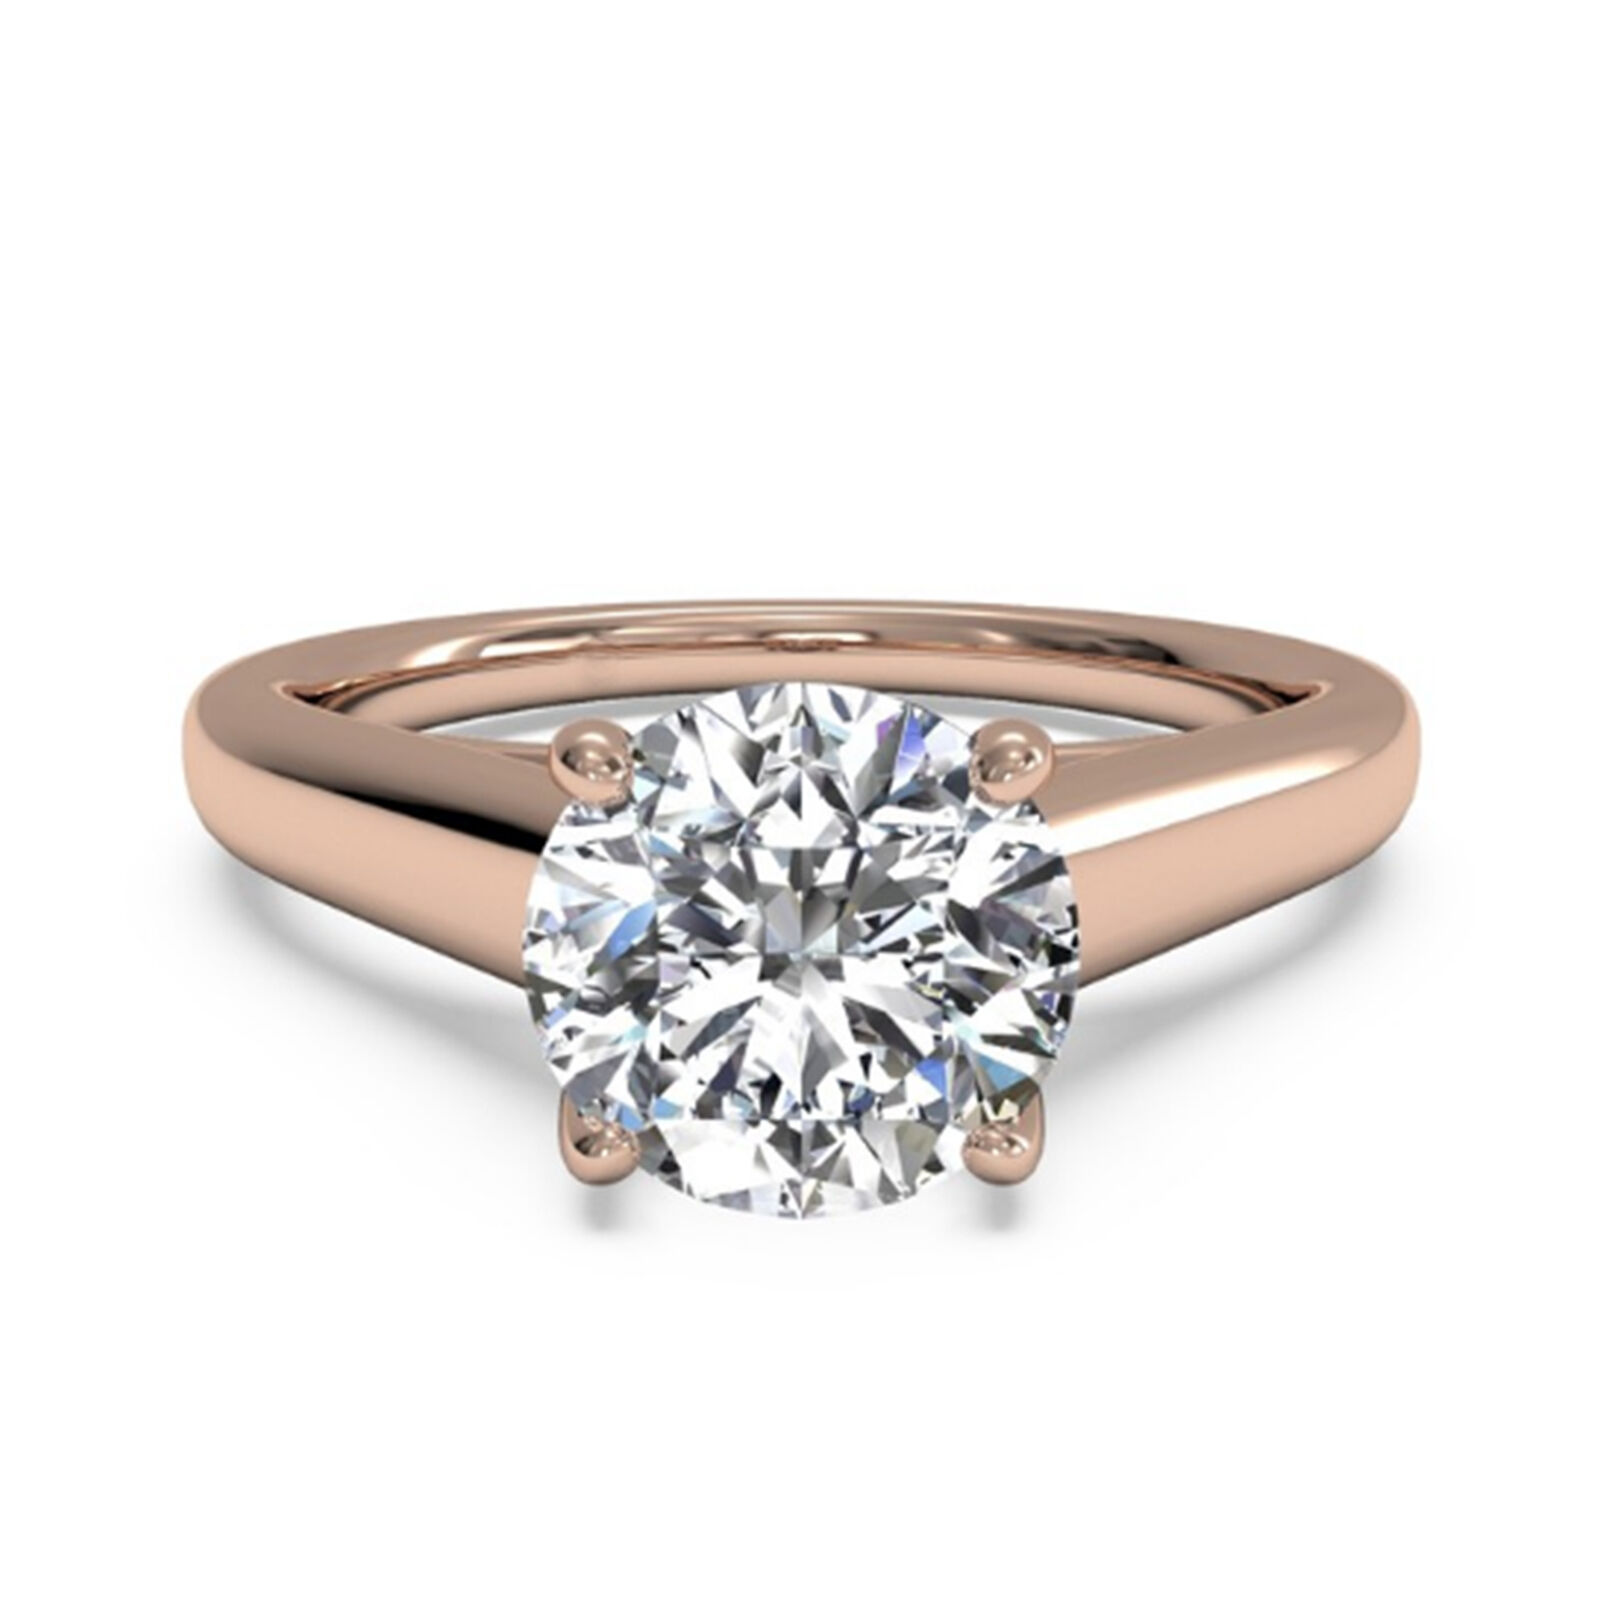 Princess Cut Solitaire 1.12 Ct Diamond Engagement Ring 14K pink gold Ring Size 7